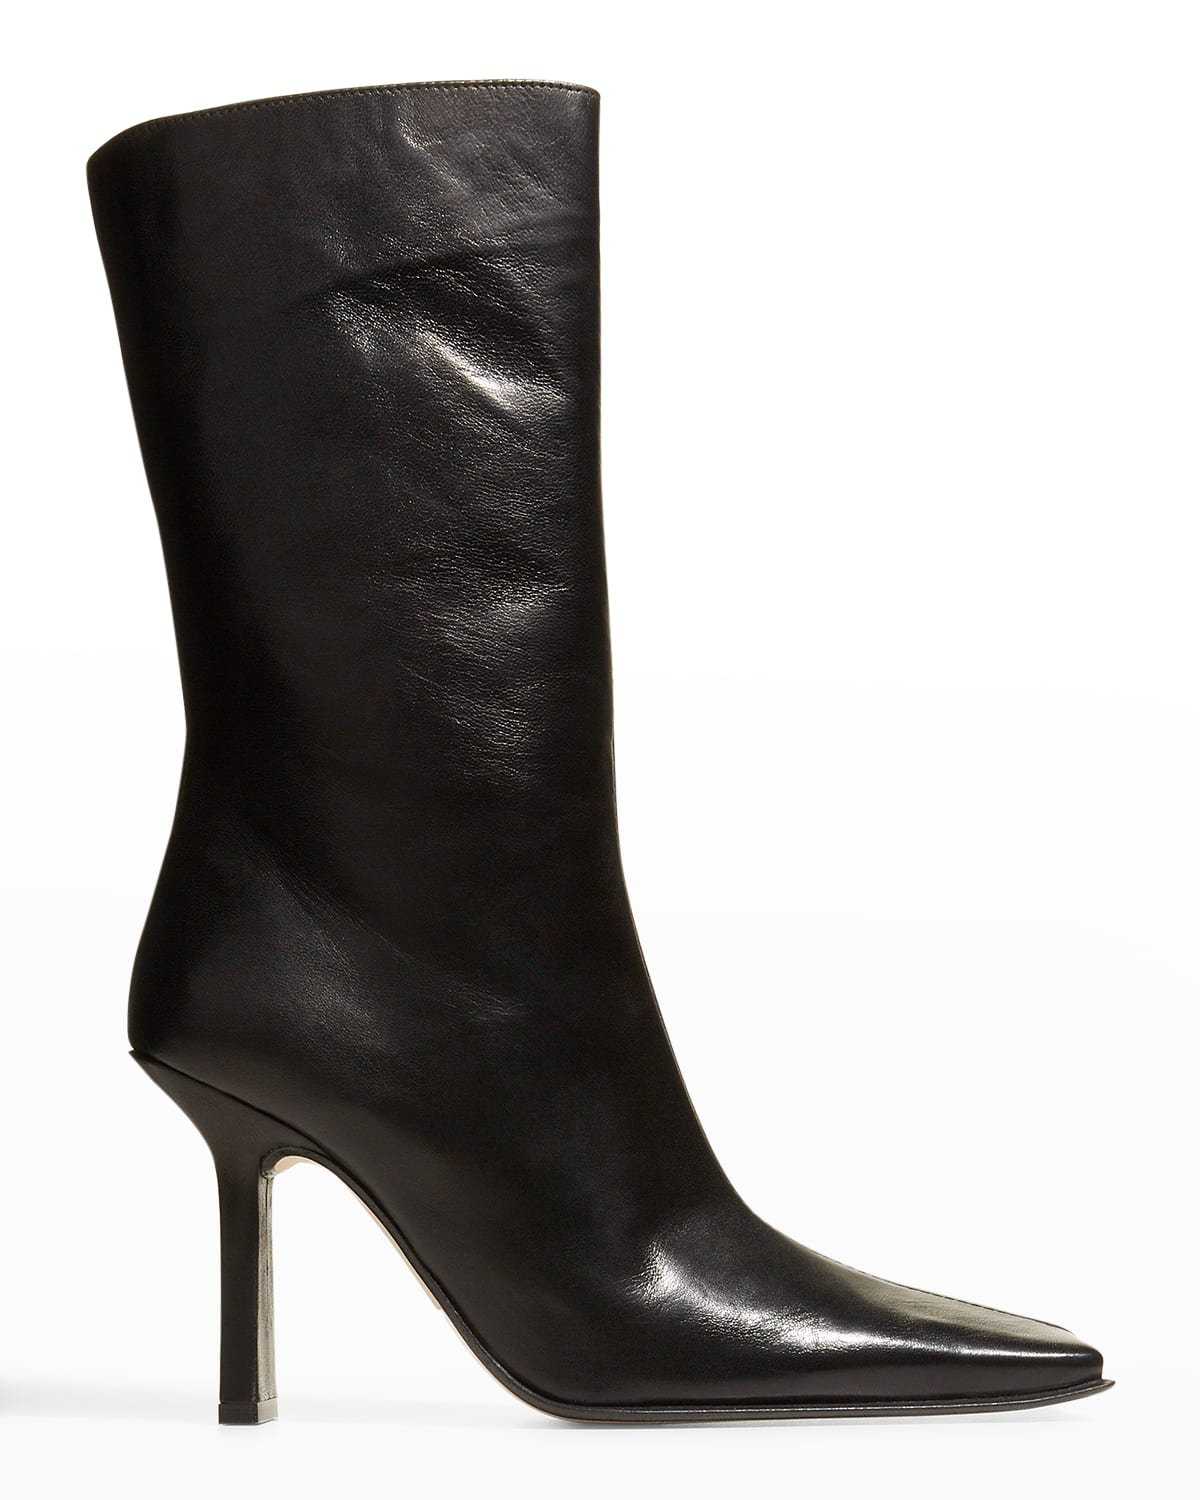 Noor Napa Leather Mid Boots